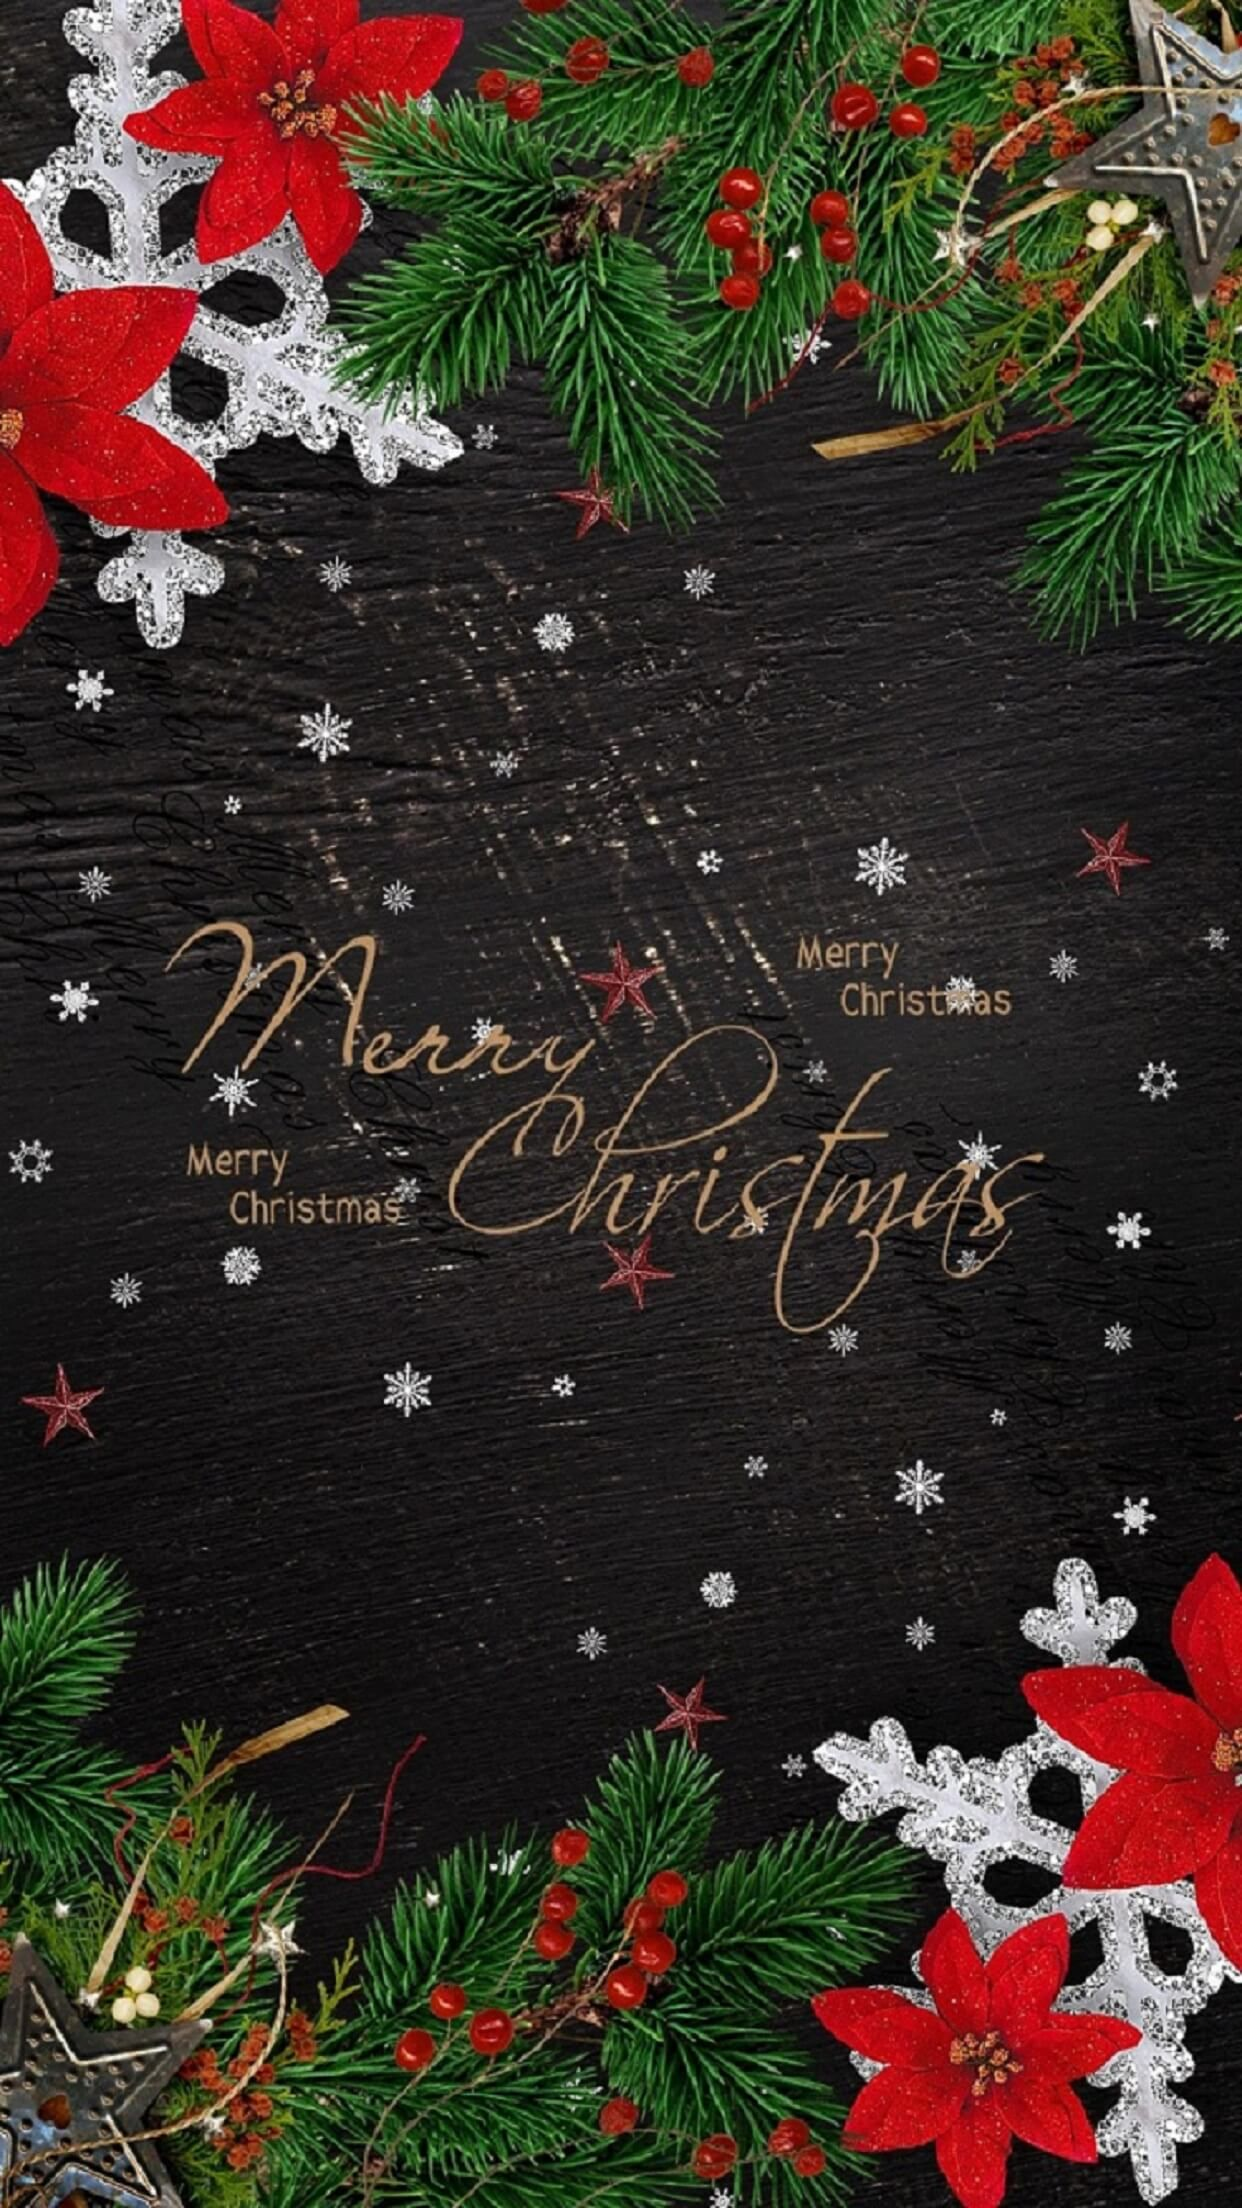 iPhone wallpaper 27 Christmas wallpaper hd, Merry